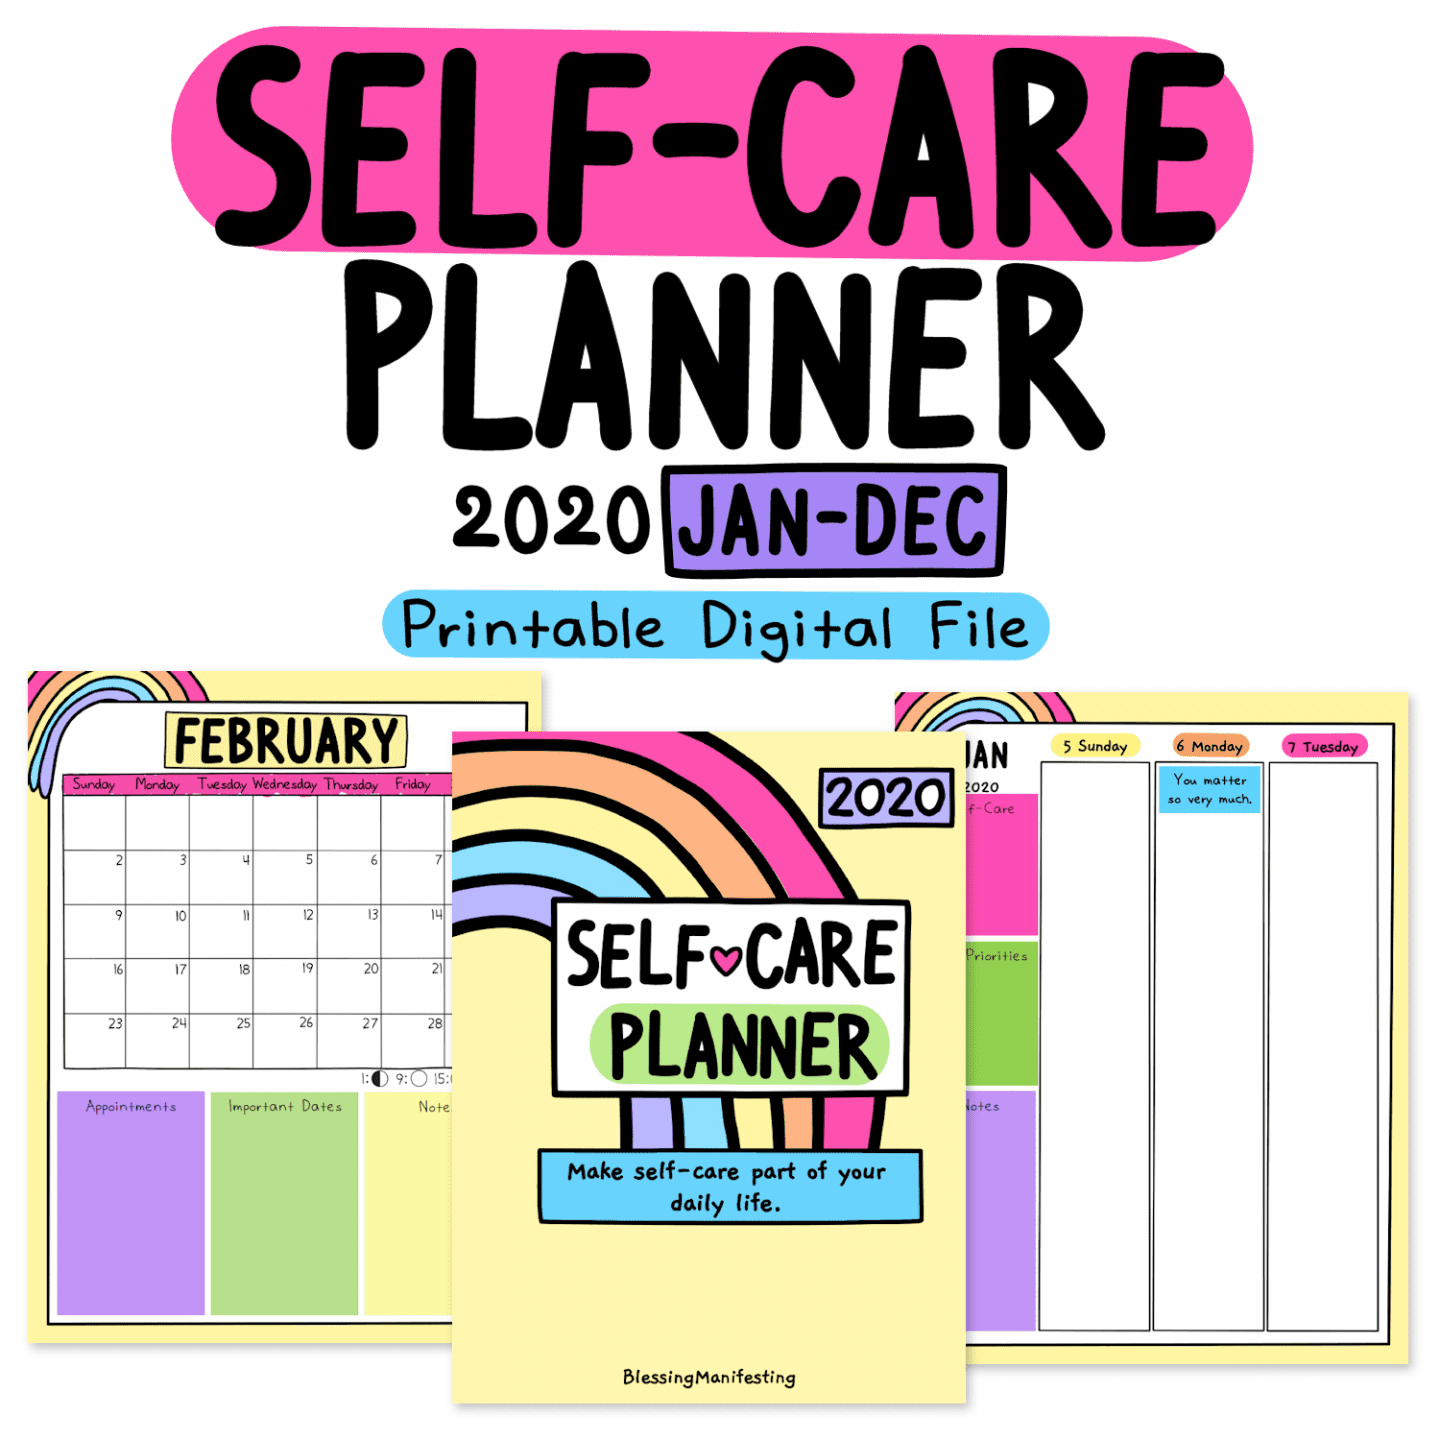 The 2020 Self-Love Planner is here!